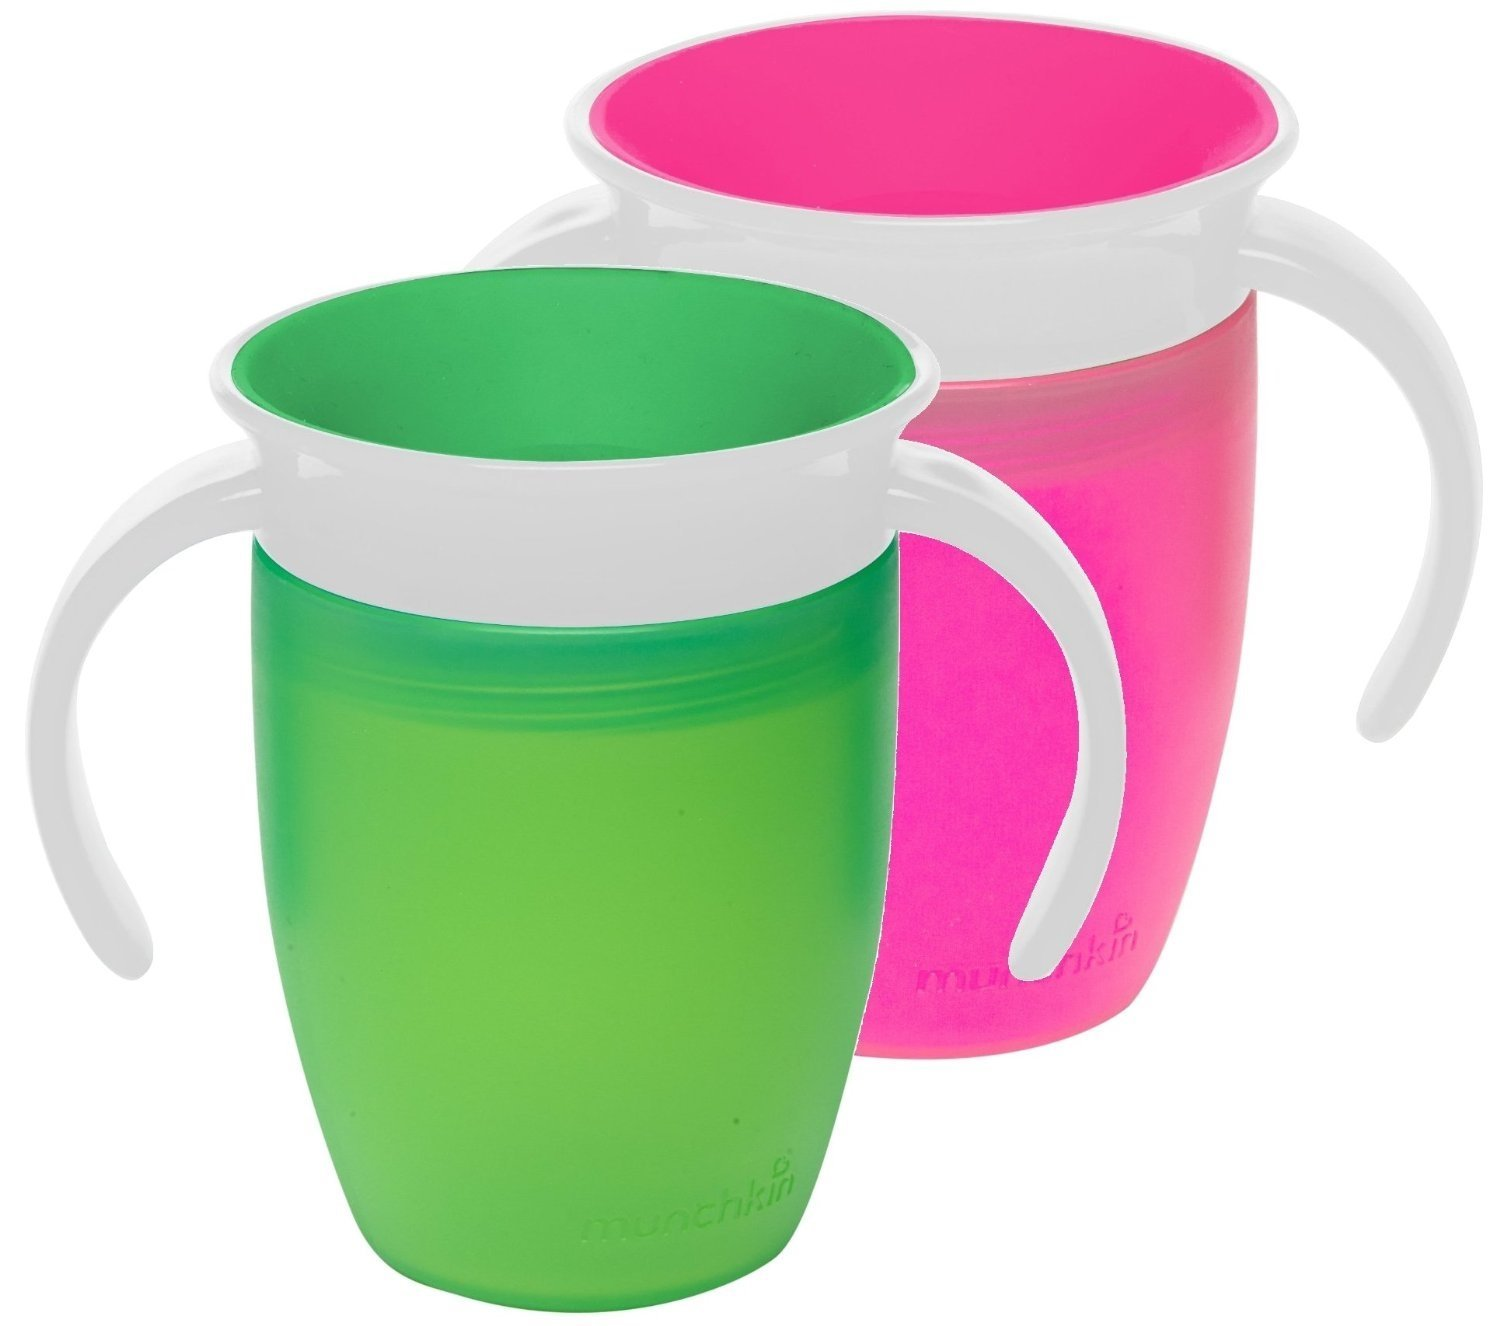 Munchkin Miracle 360 Trainer Cup, Pink/Green, 7 Ounce, 2 Count by Munchkin